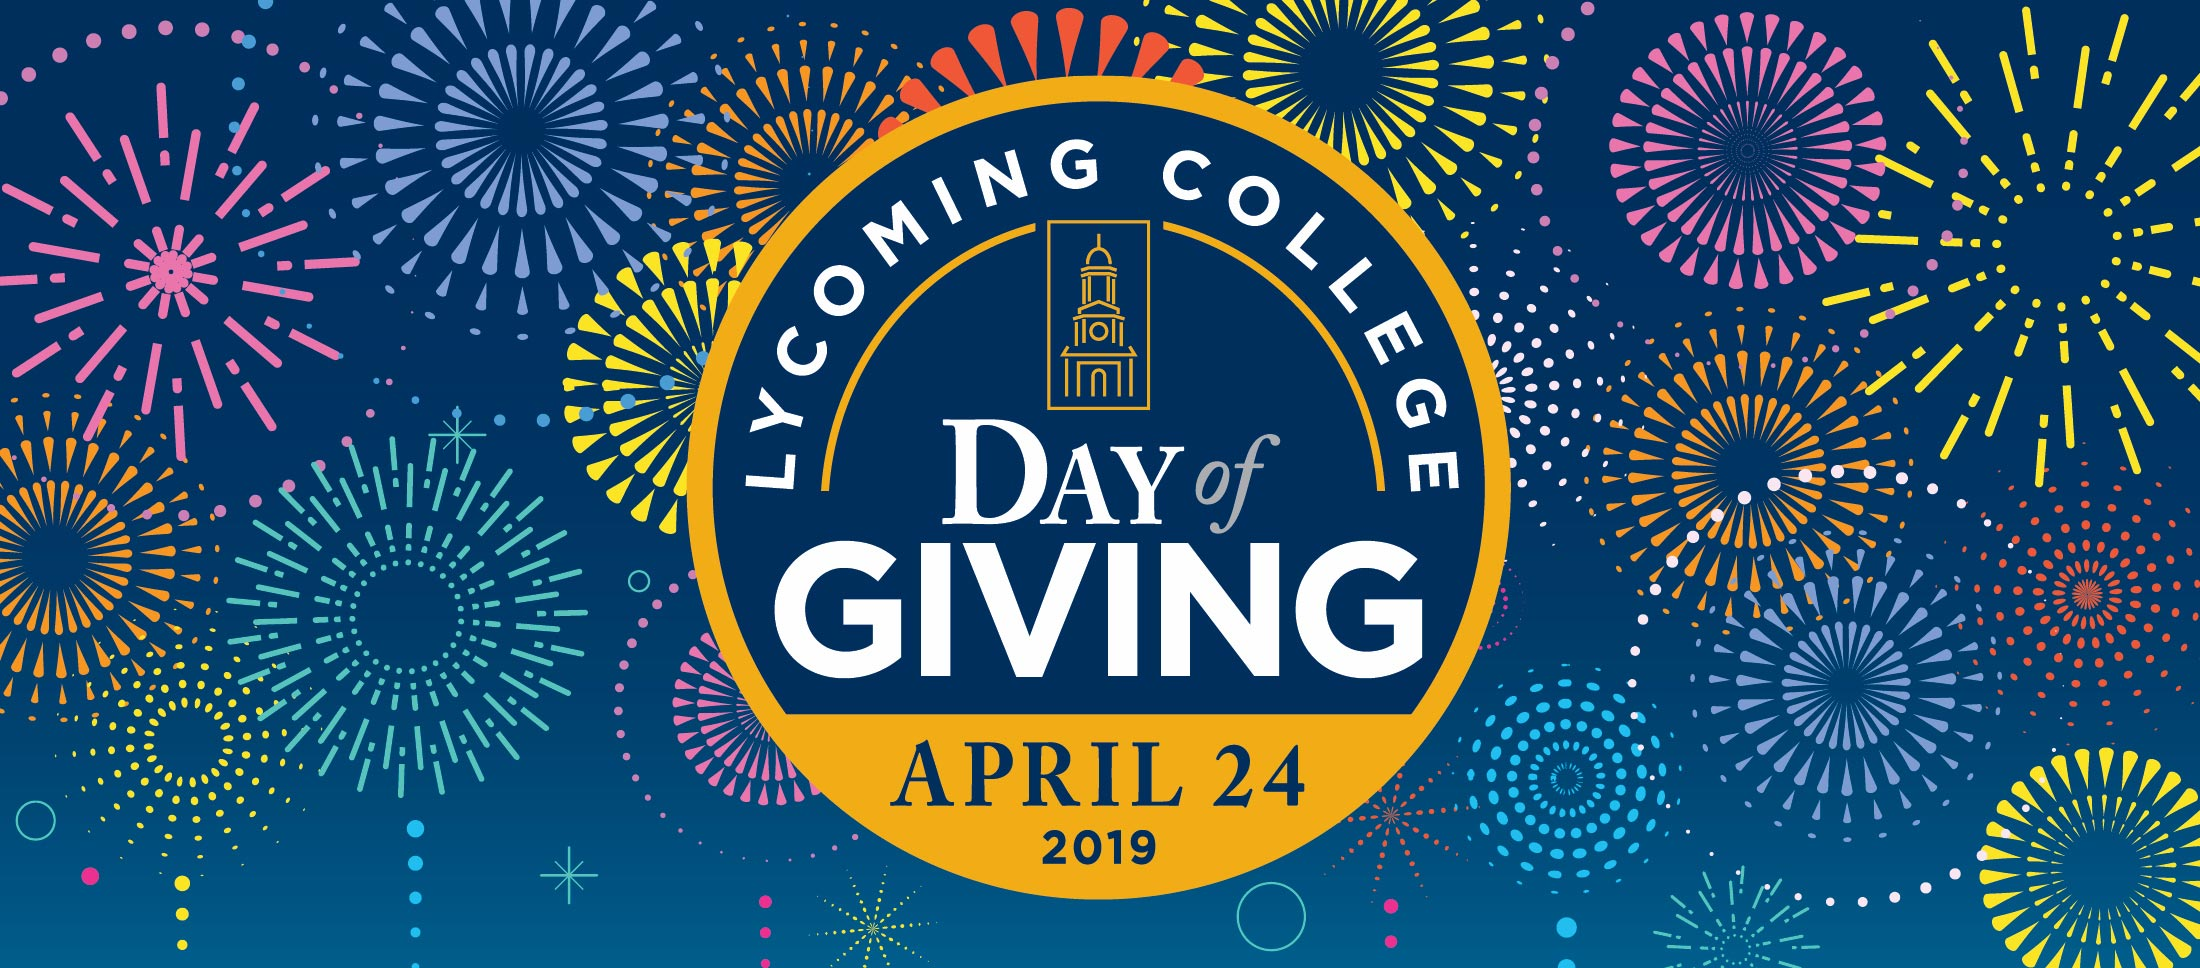 Lycoming College Day of Giving - April 24, 2019